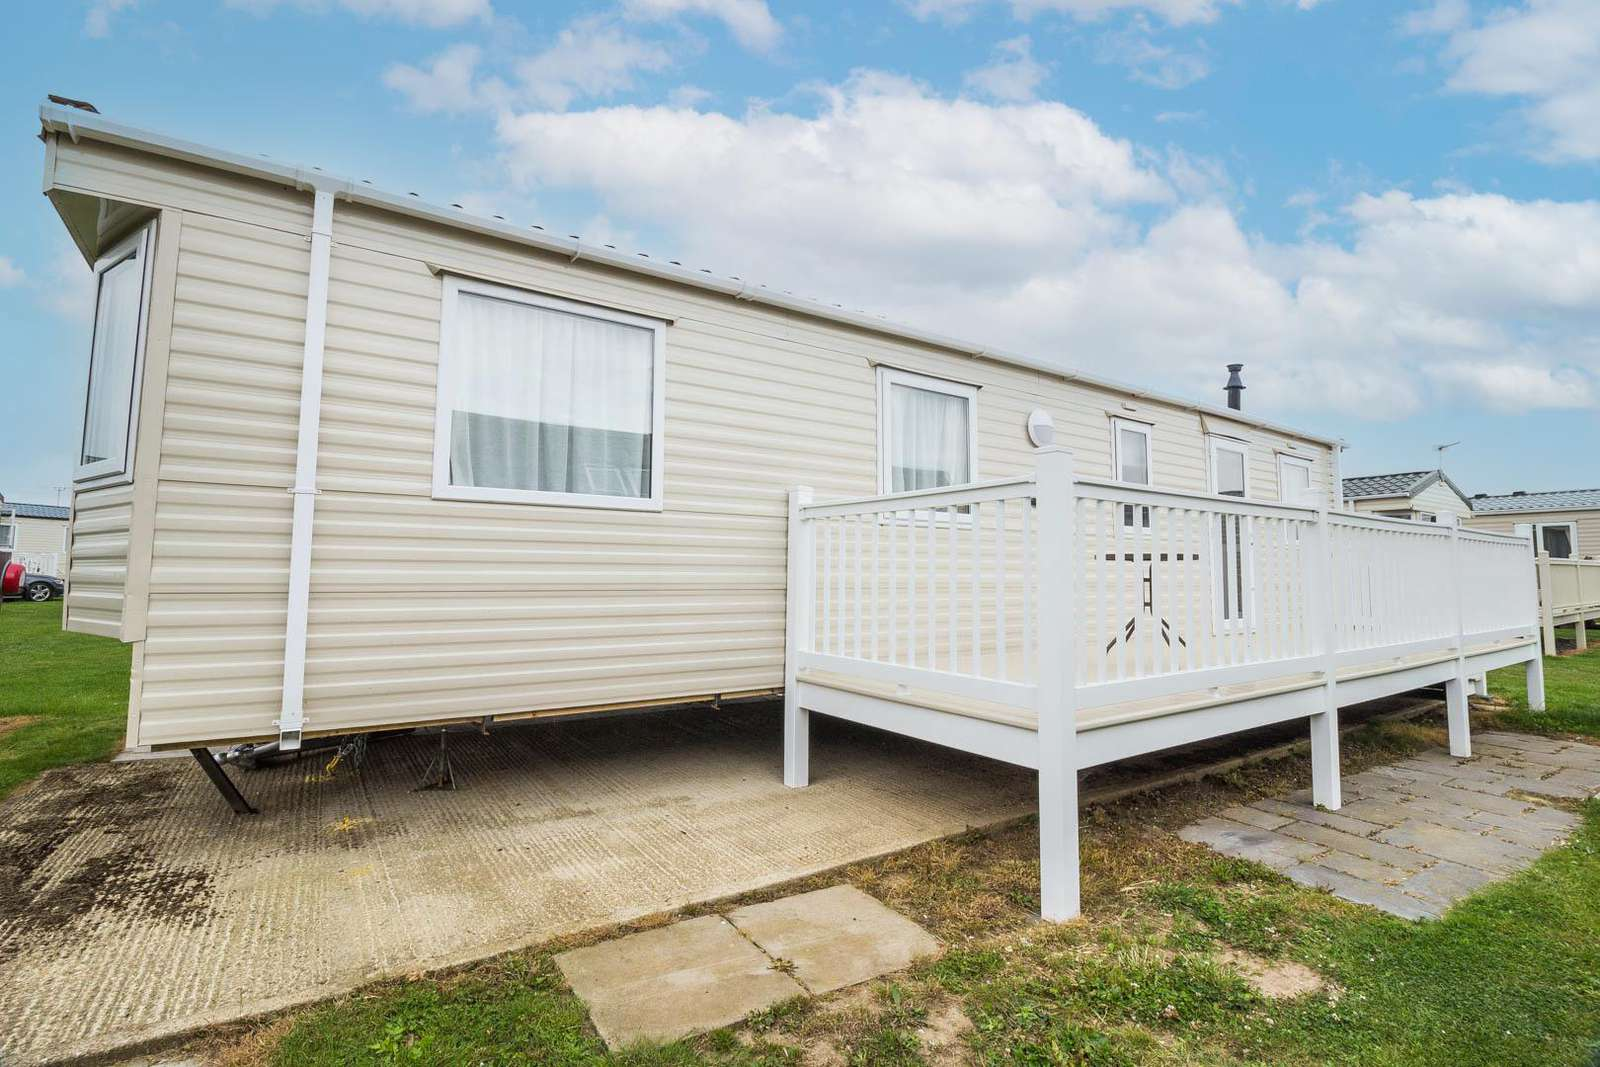 50057G – Grouse area, 2 bed, 6 berth caravan with decking. Diamond rated. - property